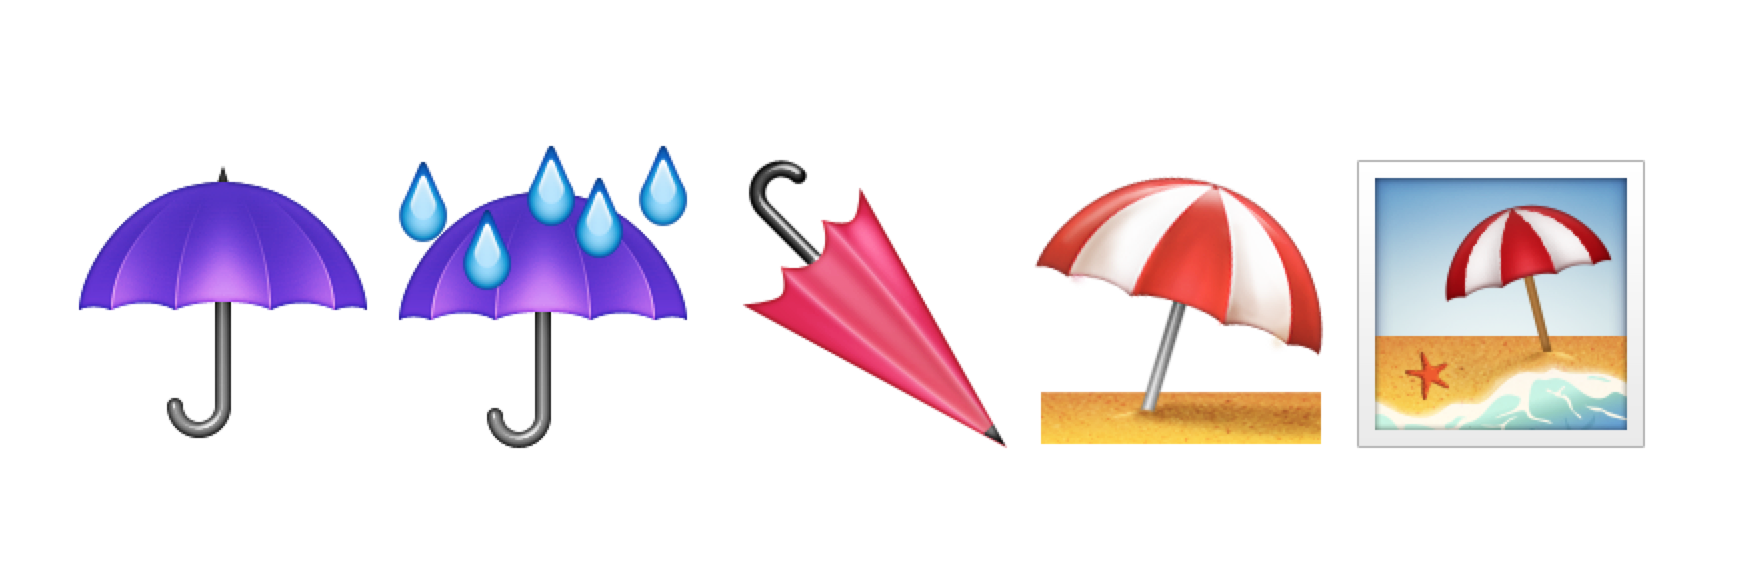 Ios 91 emoji changelog above now ios users have a choice of five umbrella emojis biocorpaavc Image collections